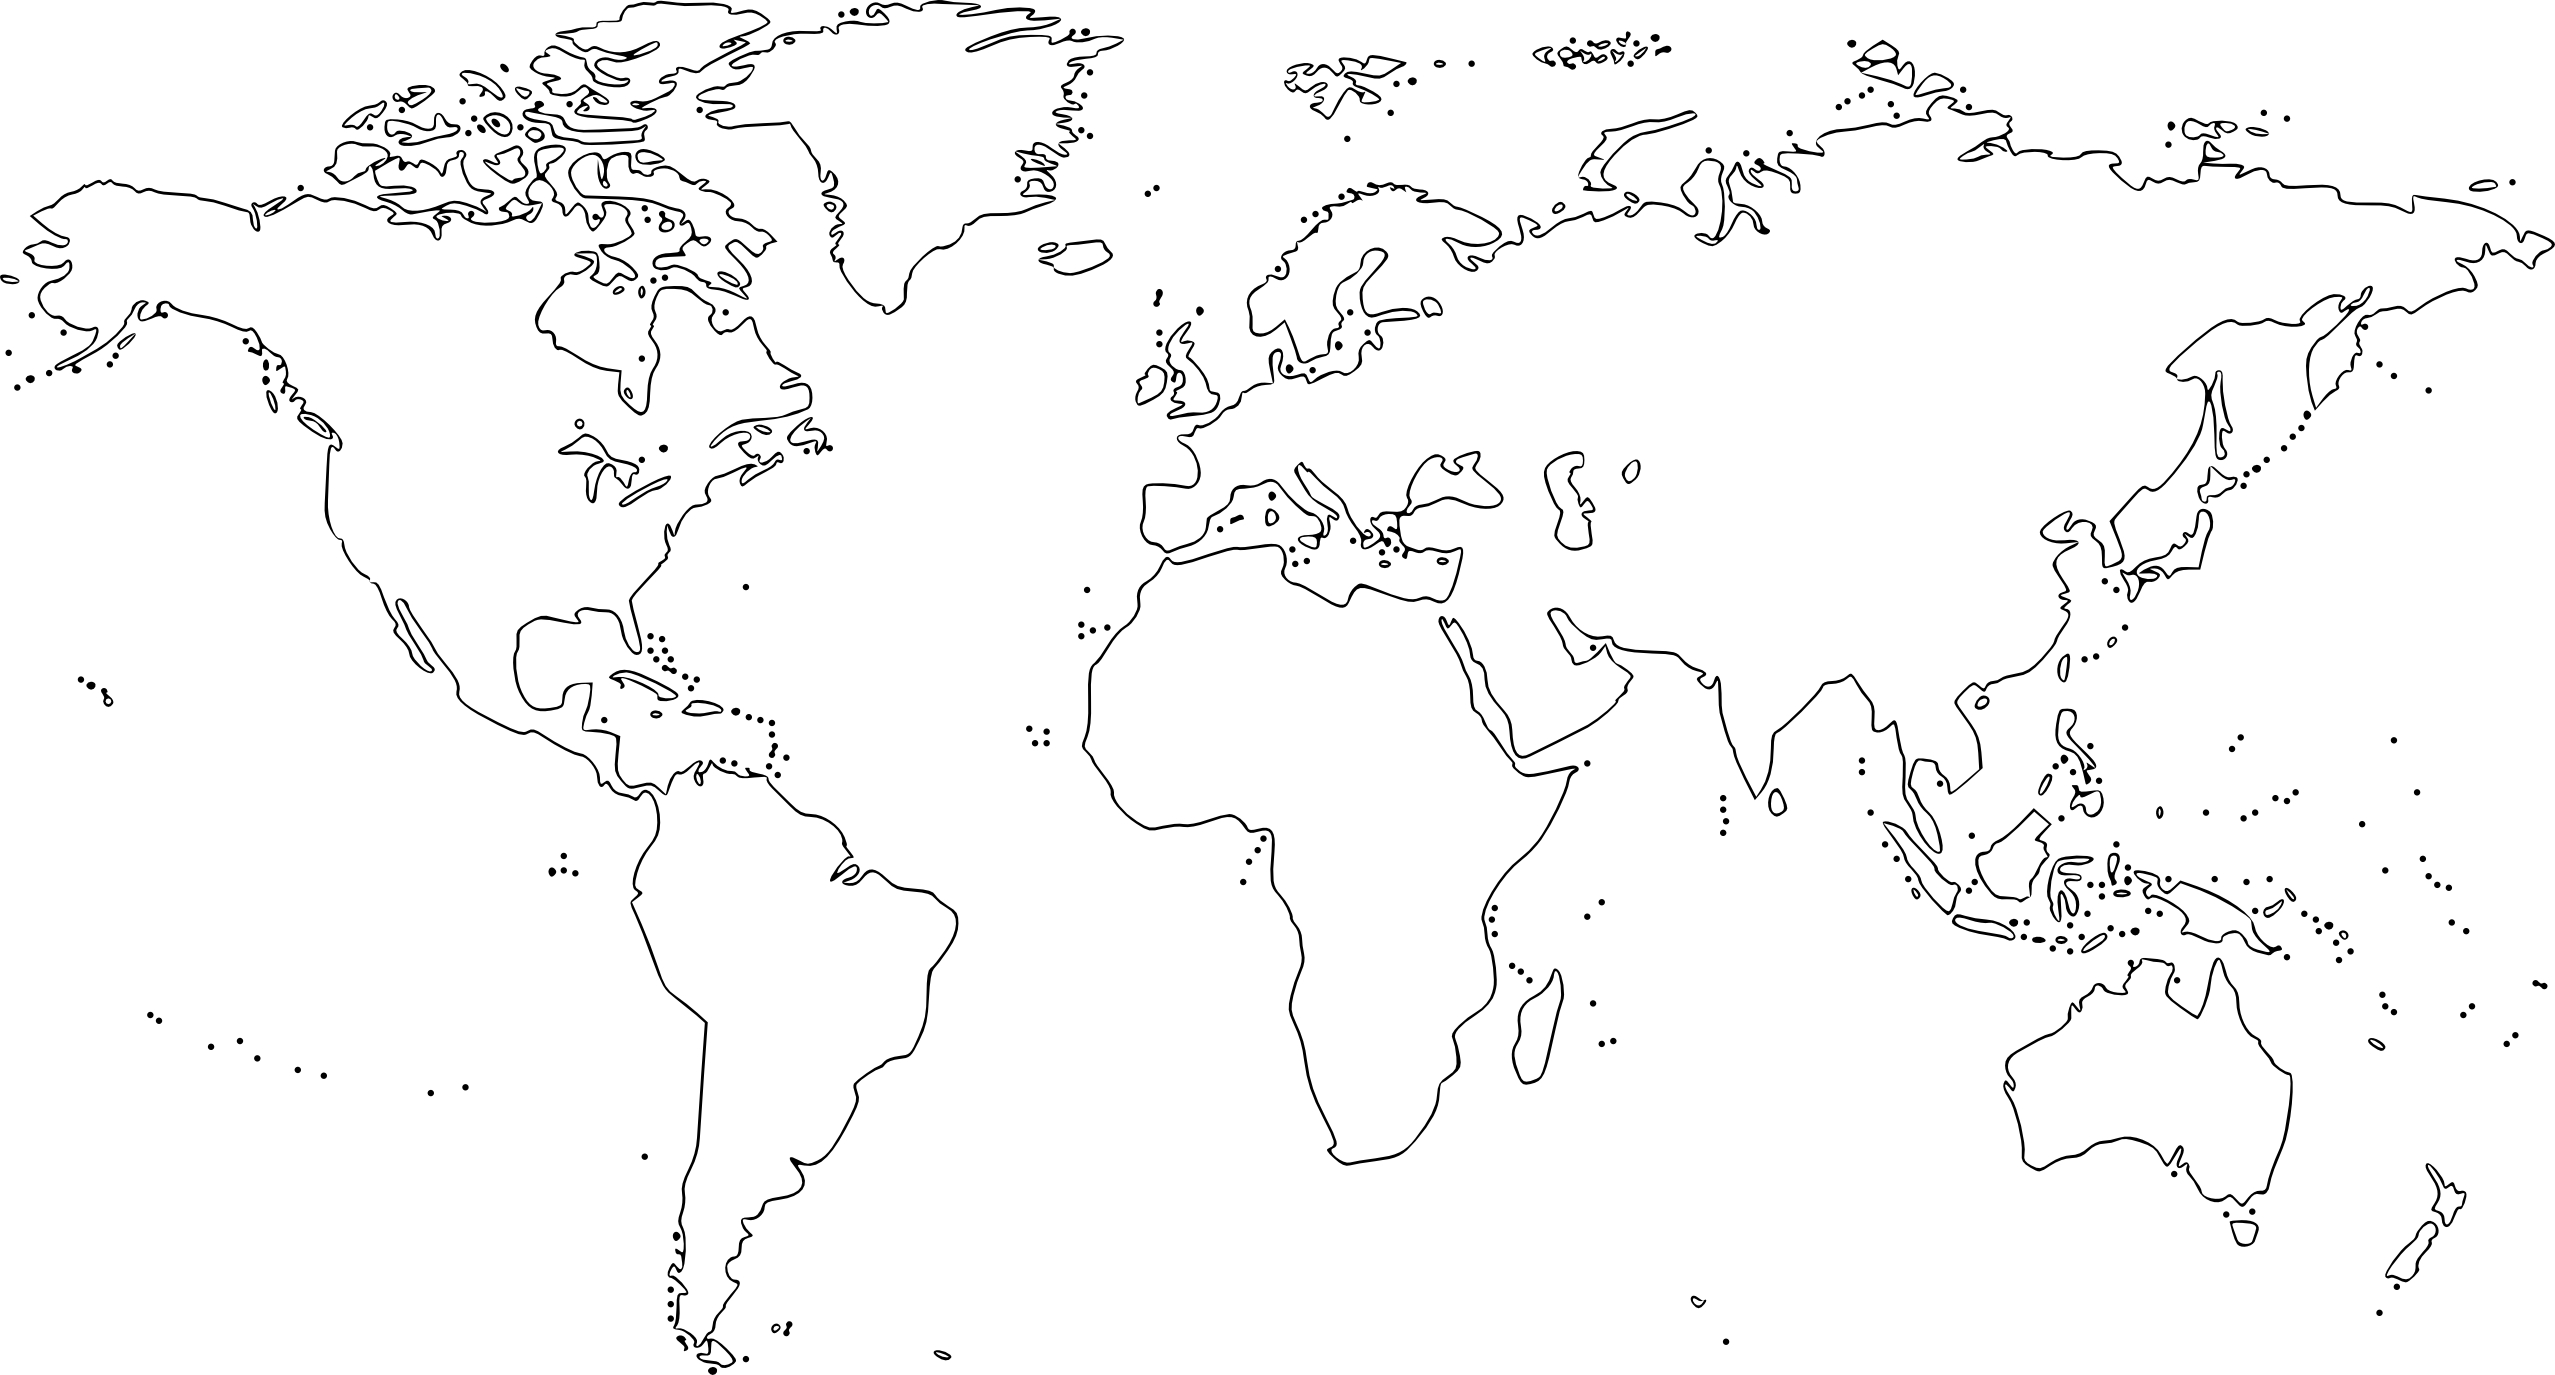 World map drawing tumblr at getdrawings free for personal use 2555x1375 best photos of black world map traceables gumiabroncs Images